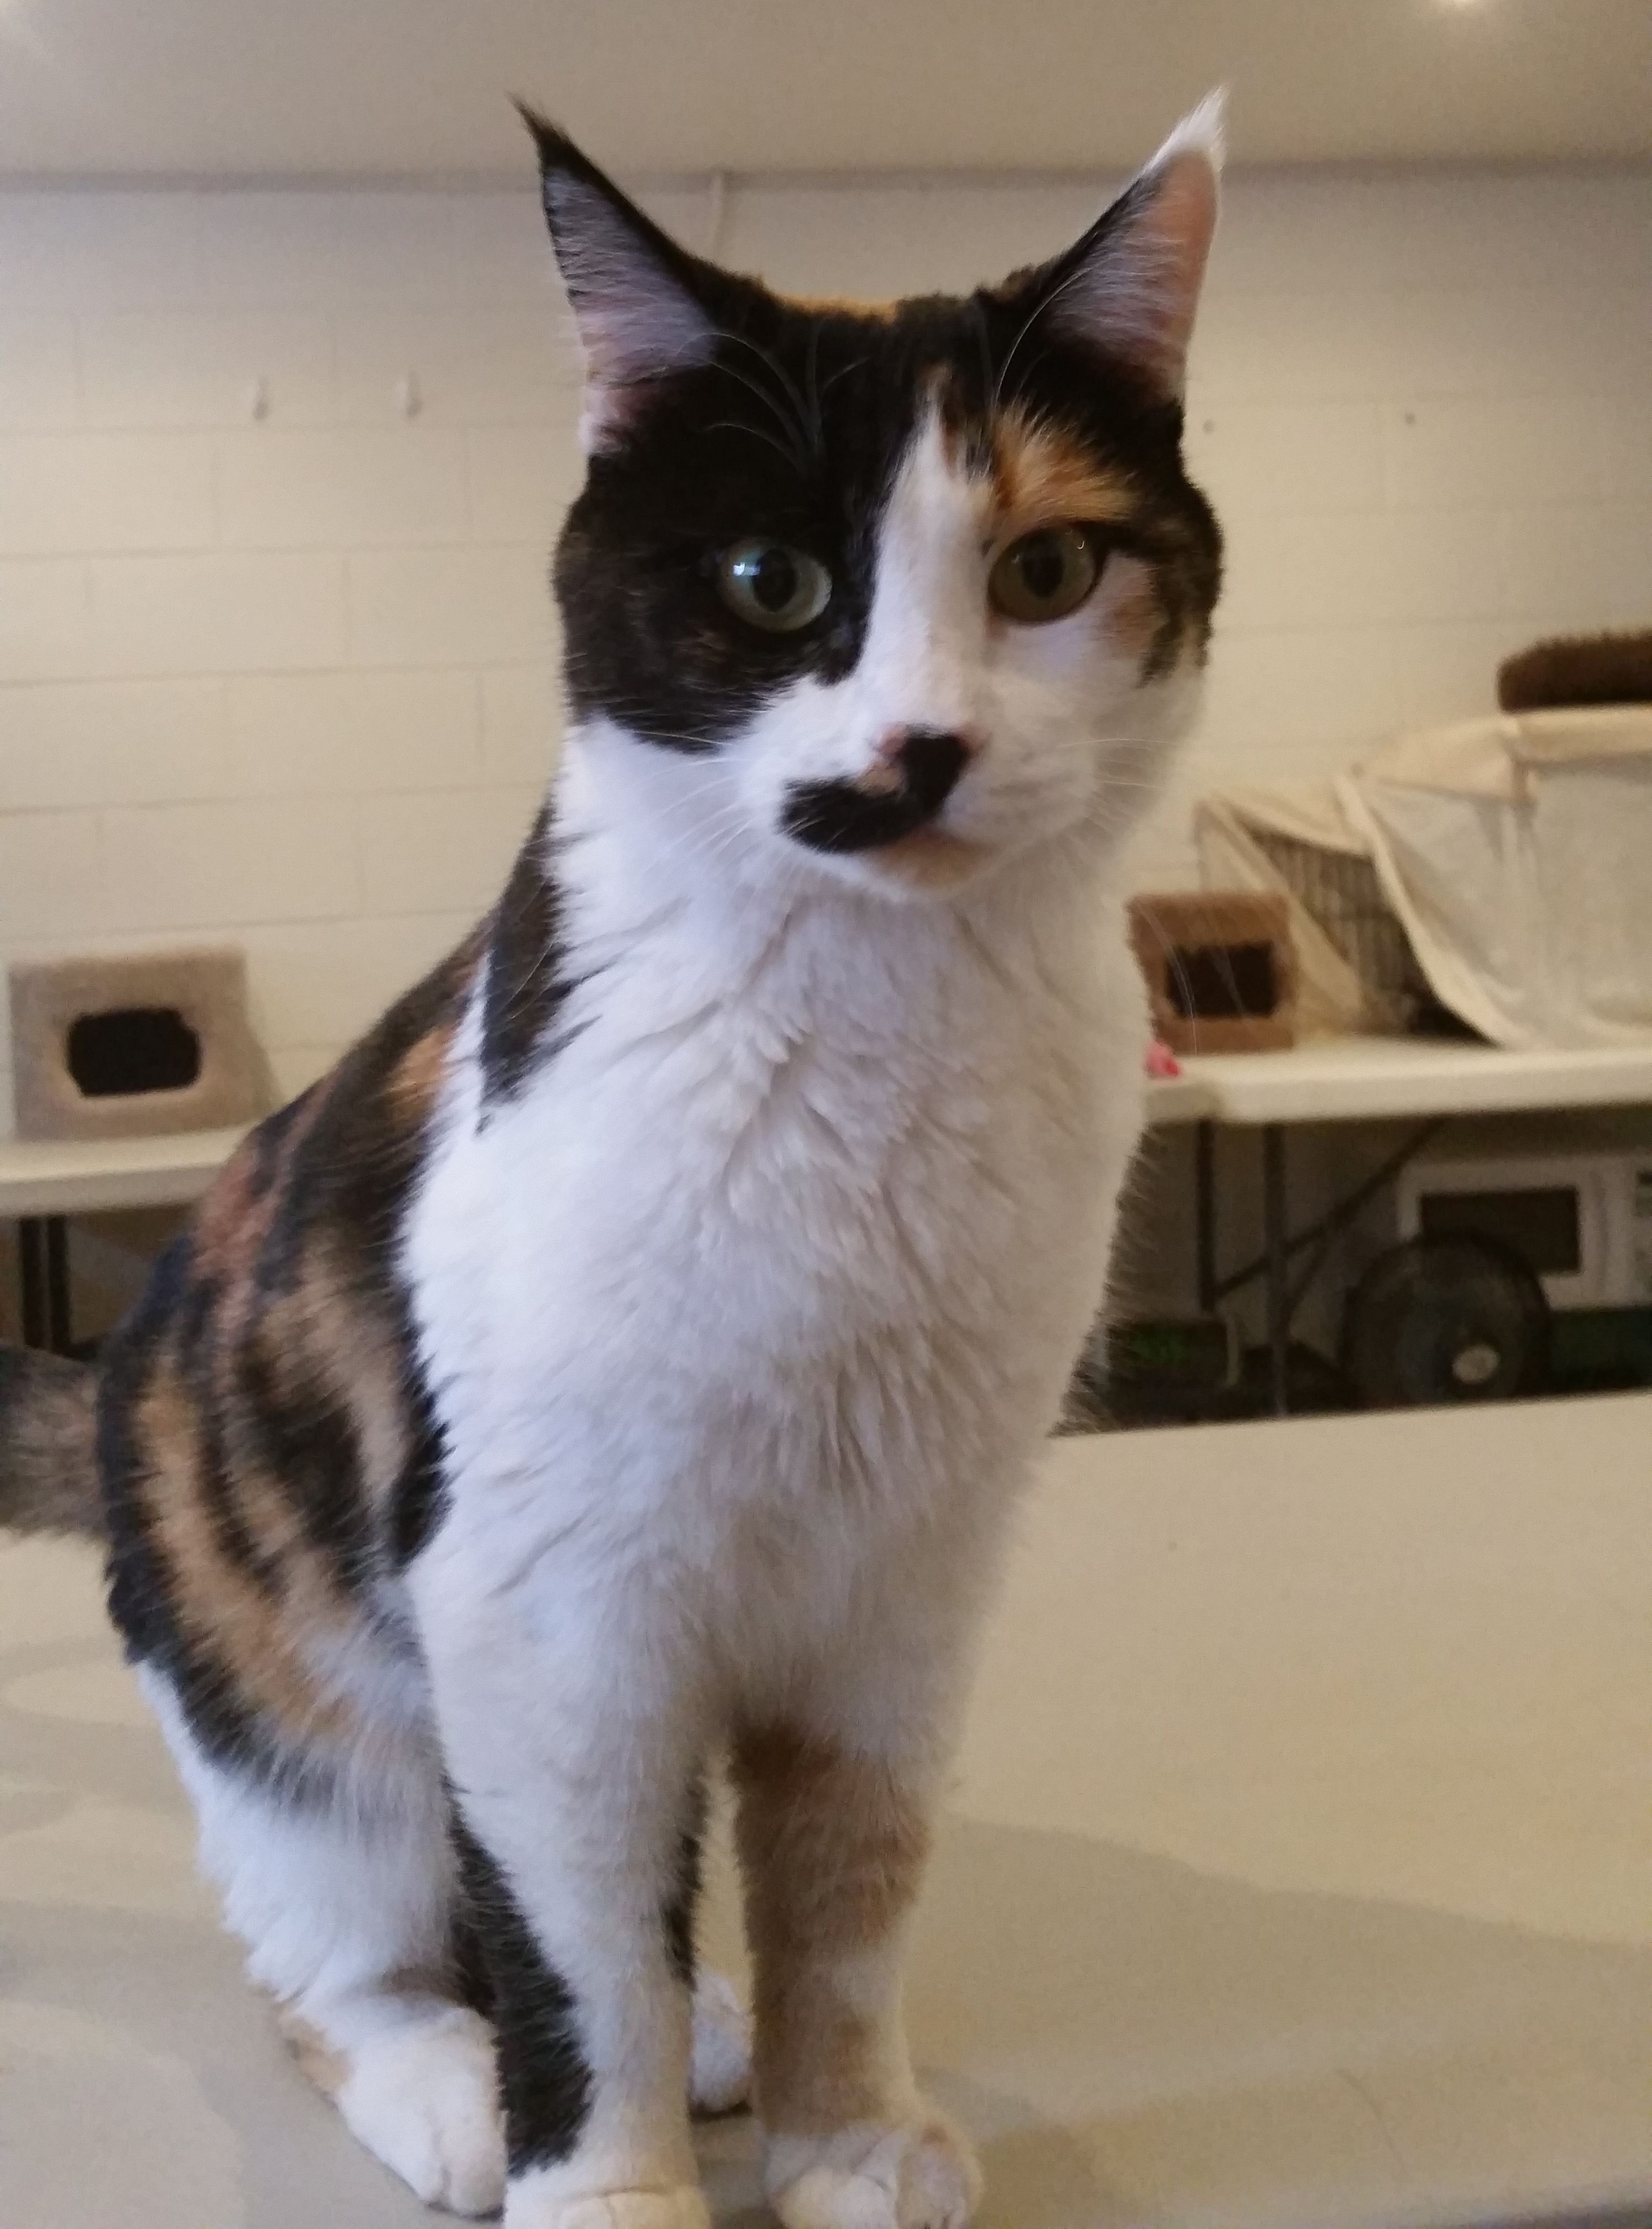 Roxie is a 3yearold calico female cat. She is mellow and